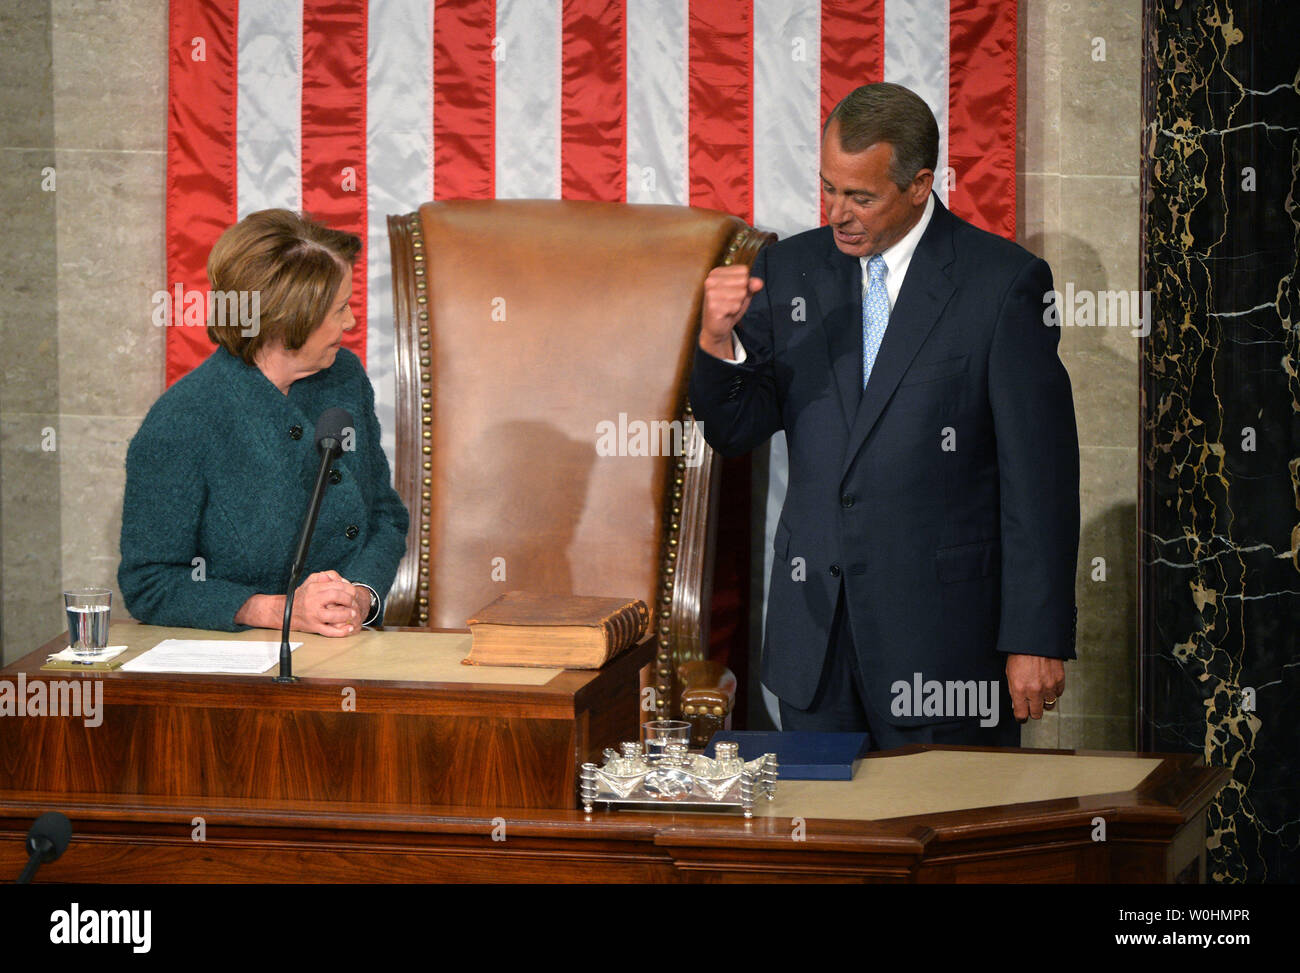 House Minority Leader Nancy Pelosi, D-CA, watches as Speaker of the House John Boehner, R-OH,  pumped his fist as she talks about Ohio State, after he was reelected as the Speaker during the first day of the 114th Congress, inside the House Chambers of the U.S. Capitol Building in Washington, D.C. on January 6, 2015. Photo by Kevin Dietsch/UPI - Stock Image